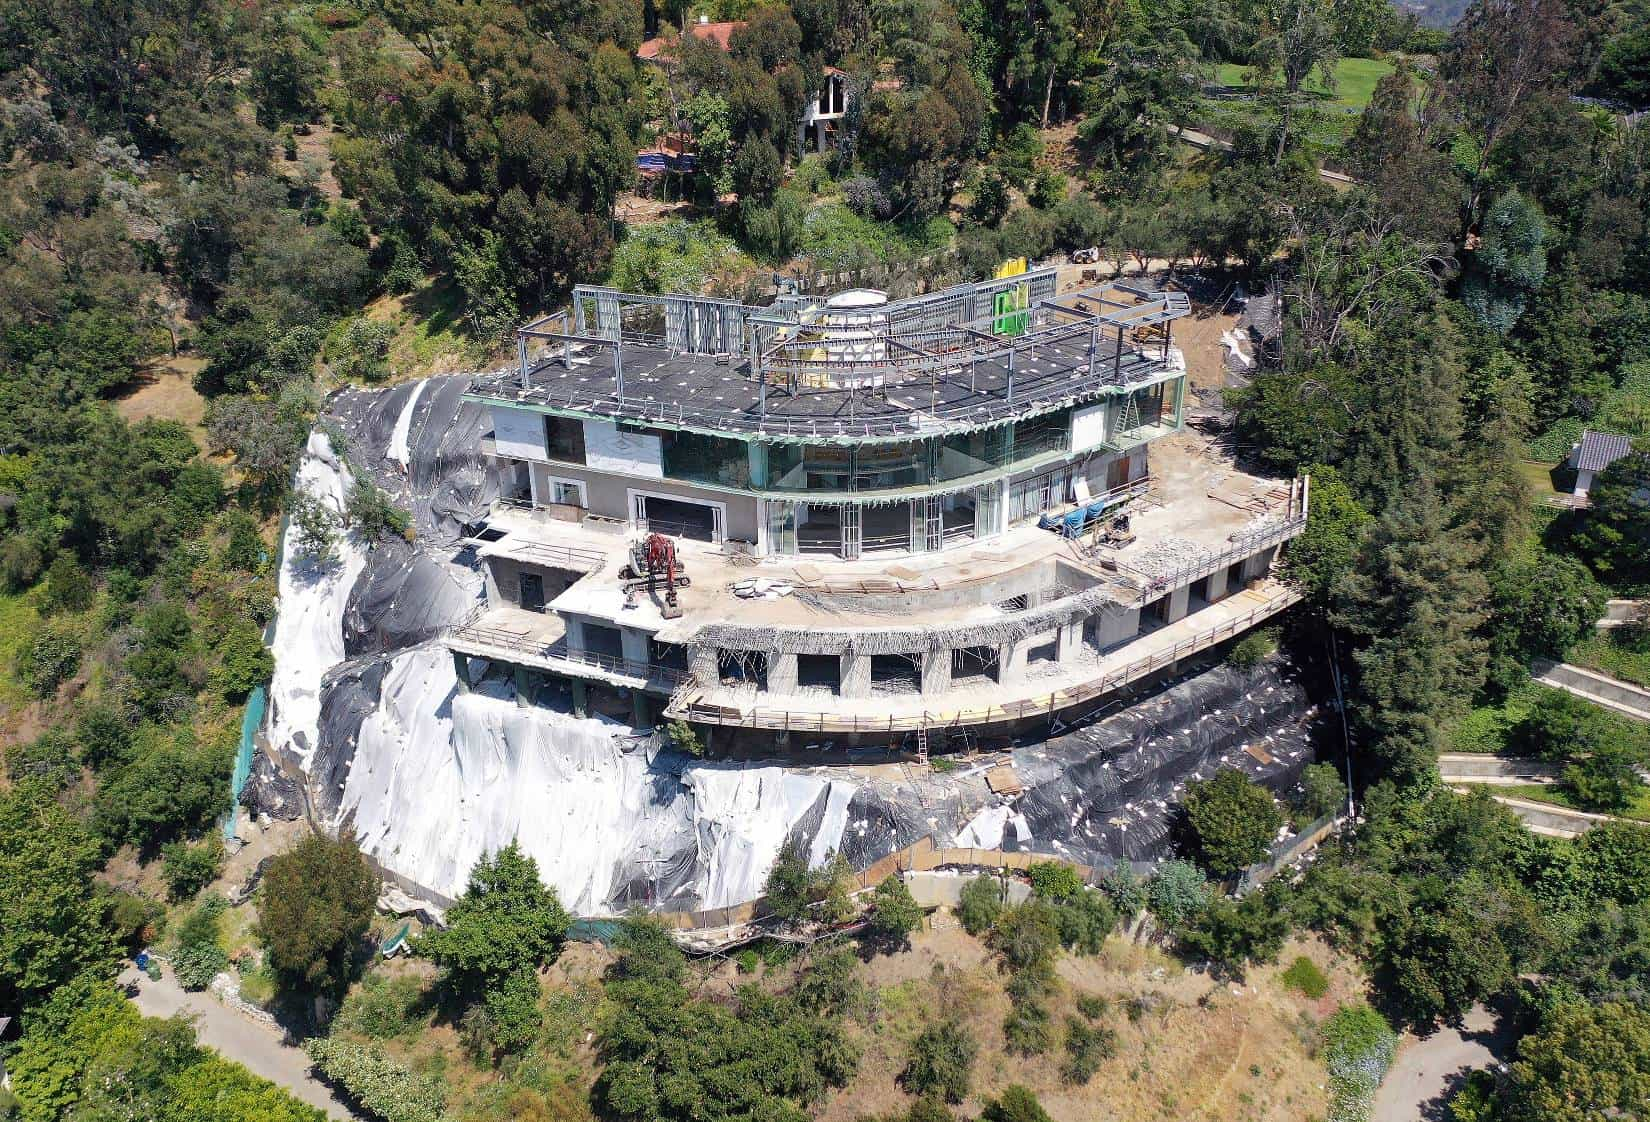 Mohamed Hadid Bel-Air Mansion Ordered to be Demolished